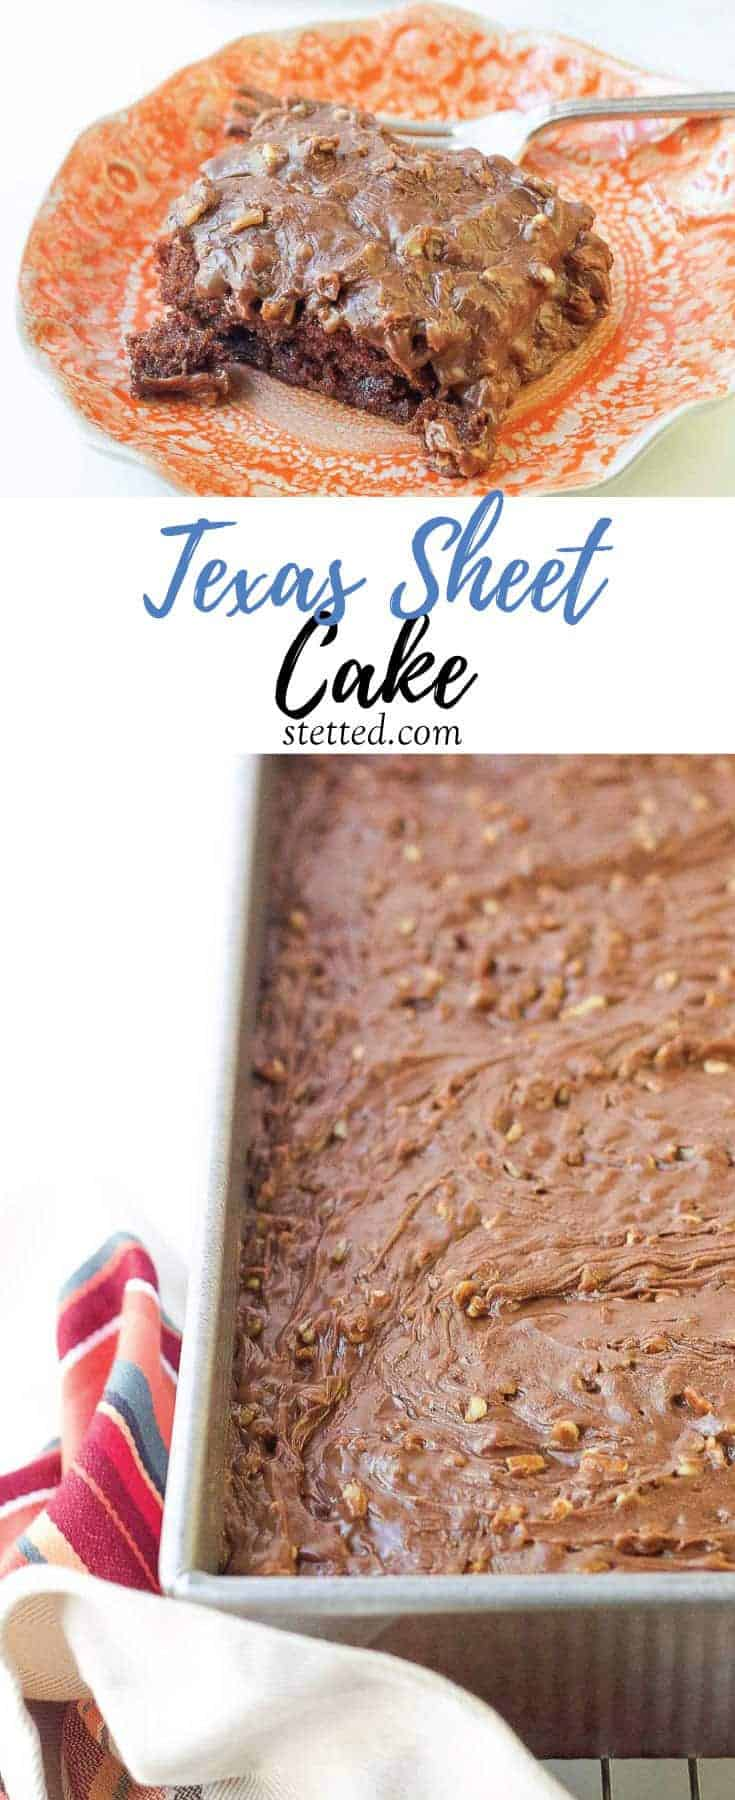 Texas Sheet Cake is ooey-gooey party perfection.